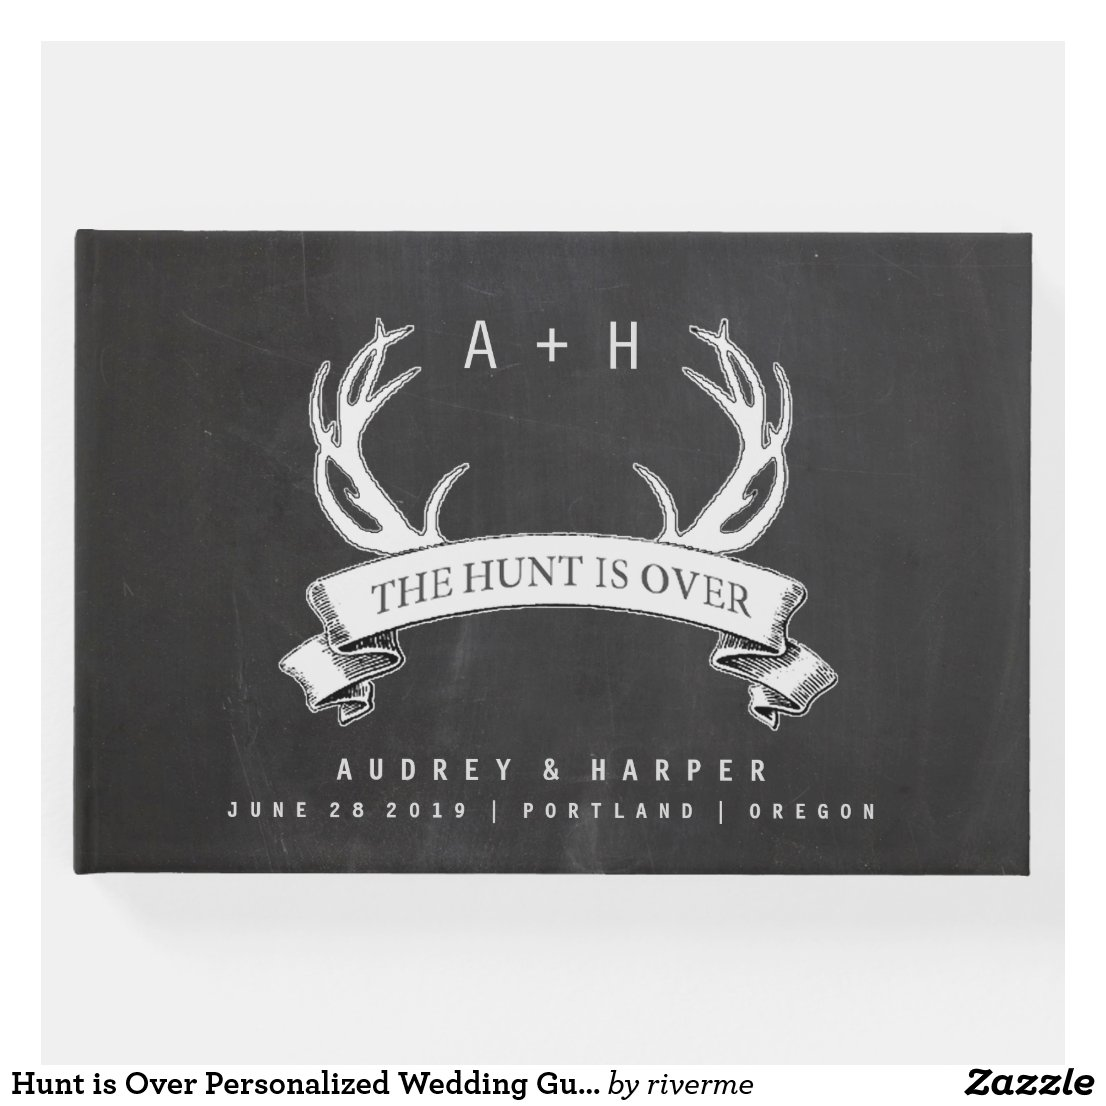 Hunt is Over Personalized Wedding Guest Book